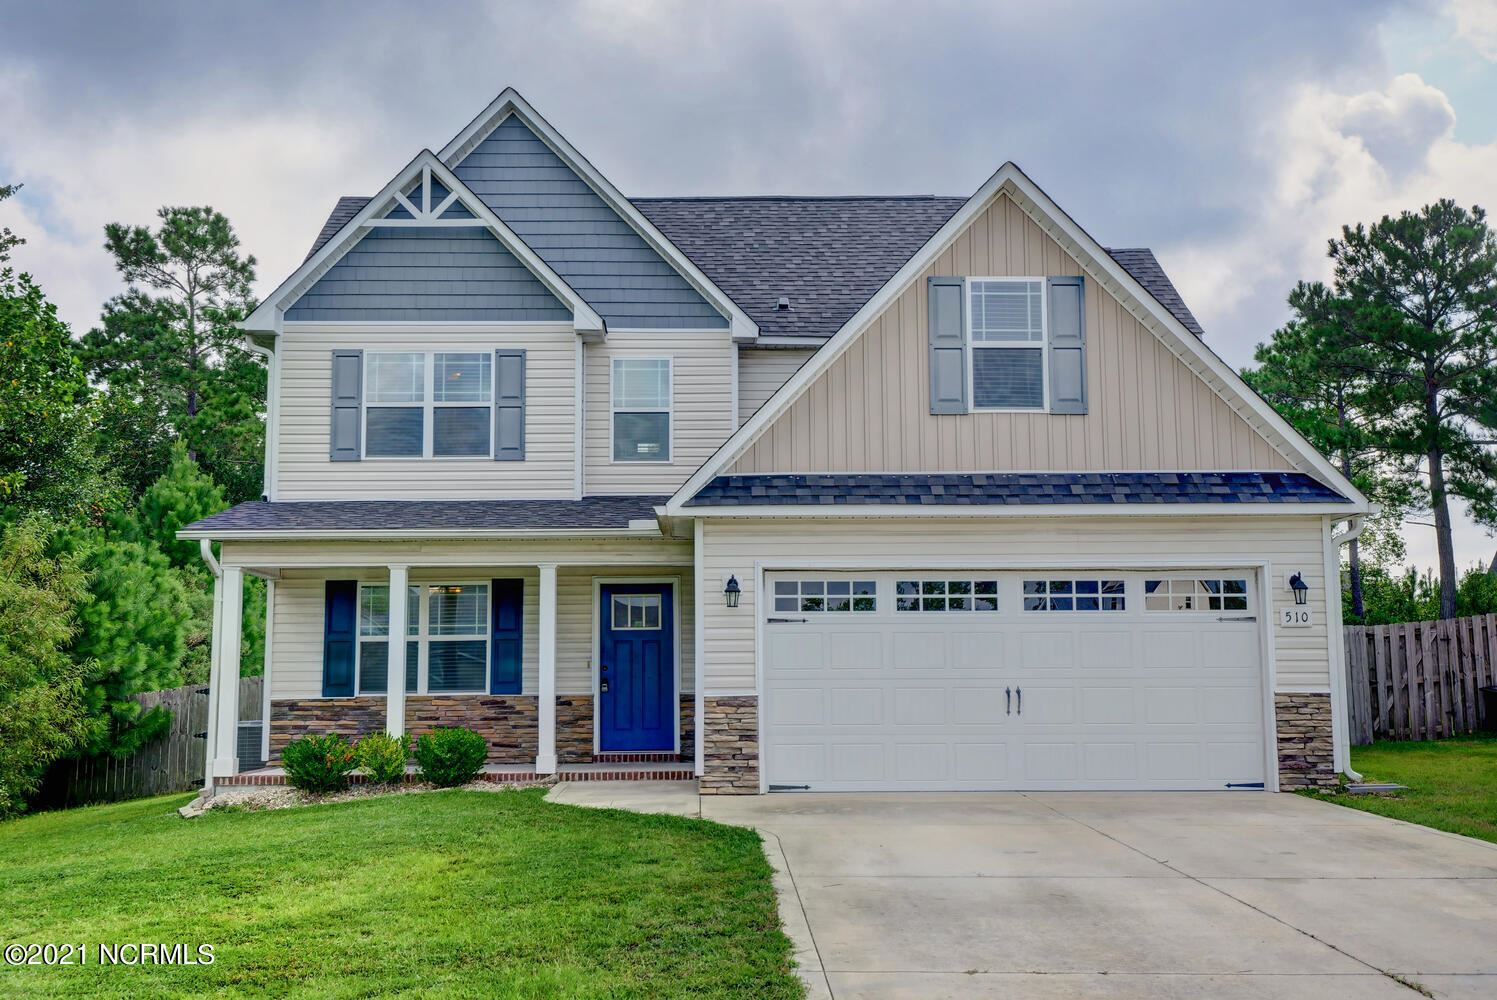 Photo of 510 Deep Inlet Drive, Sneads Ferry, NC 28460 (MLS # 100287494)